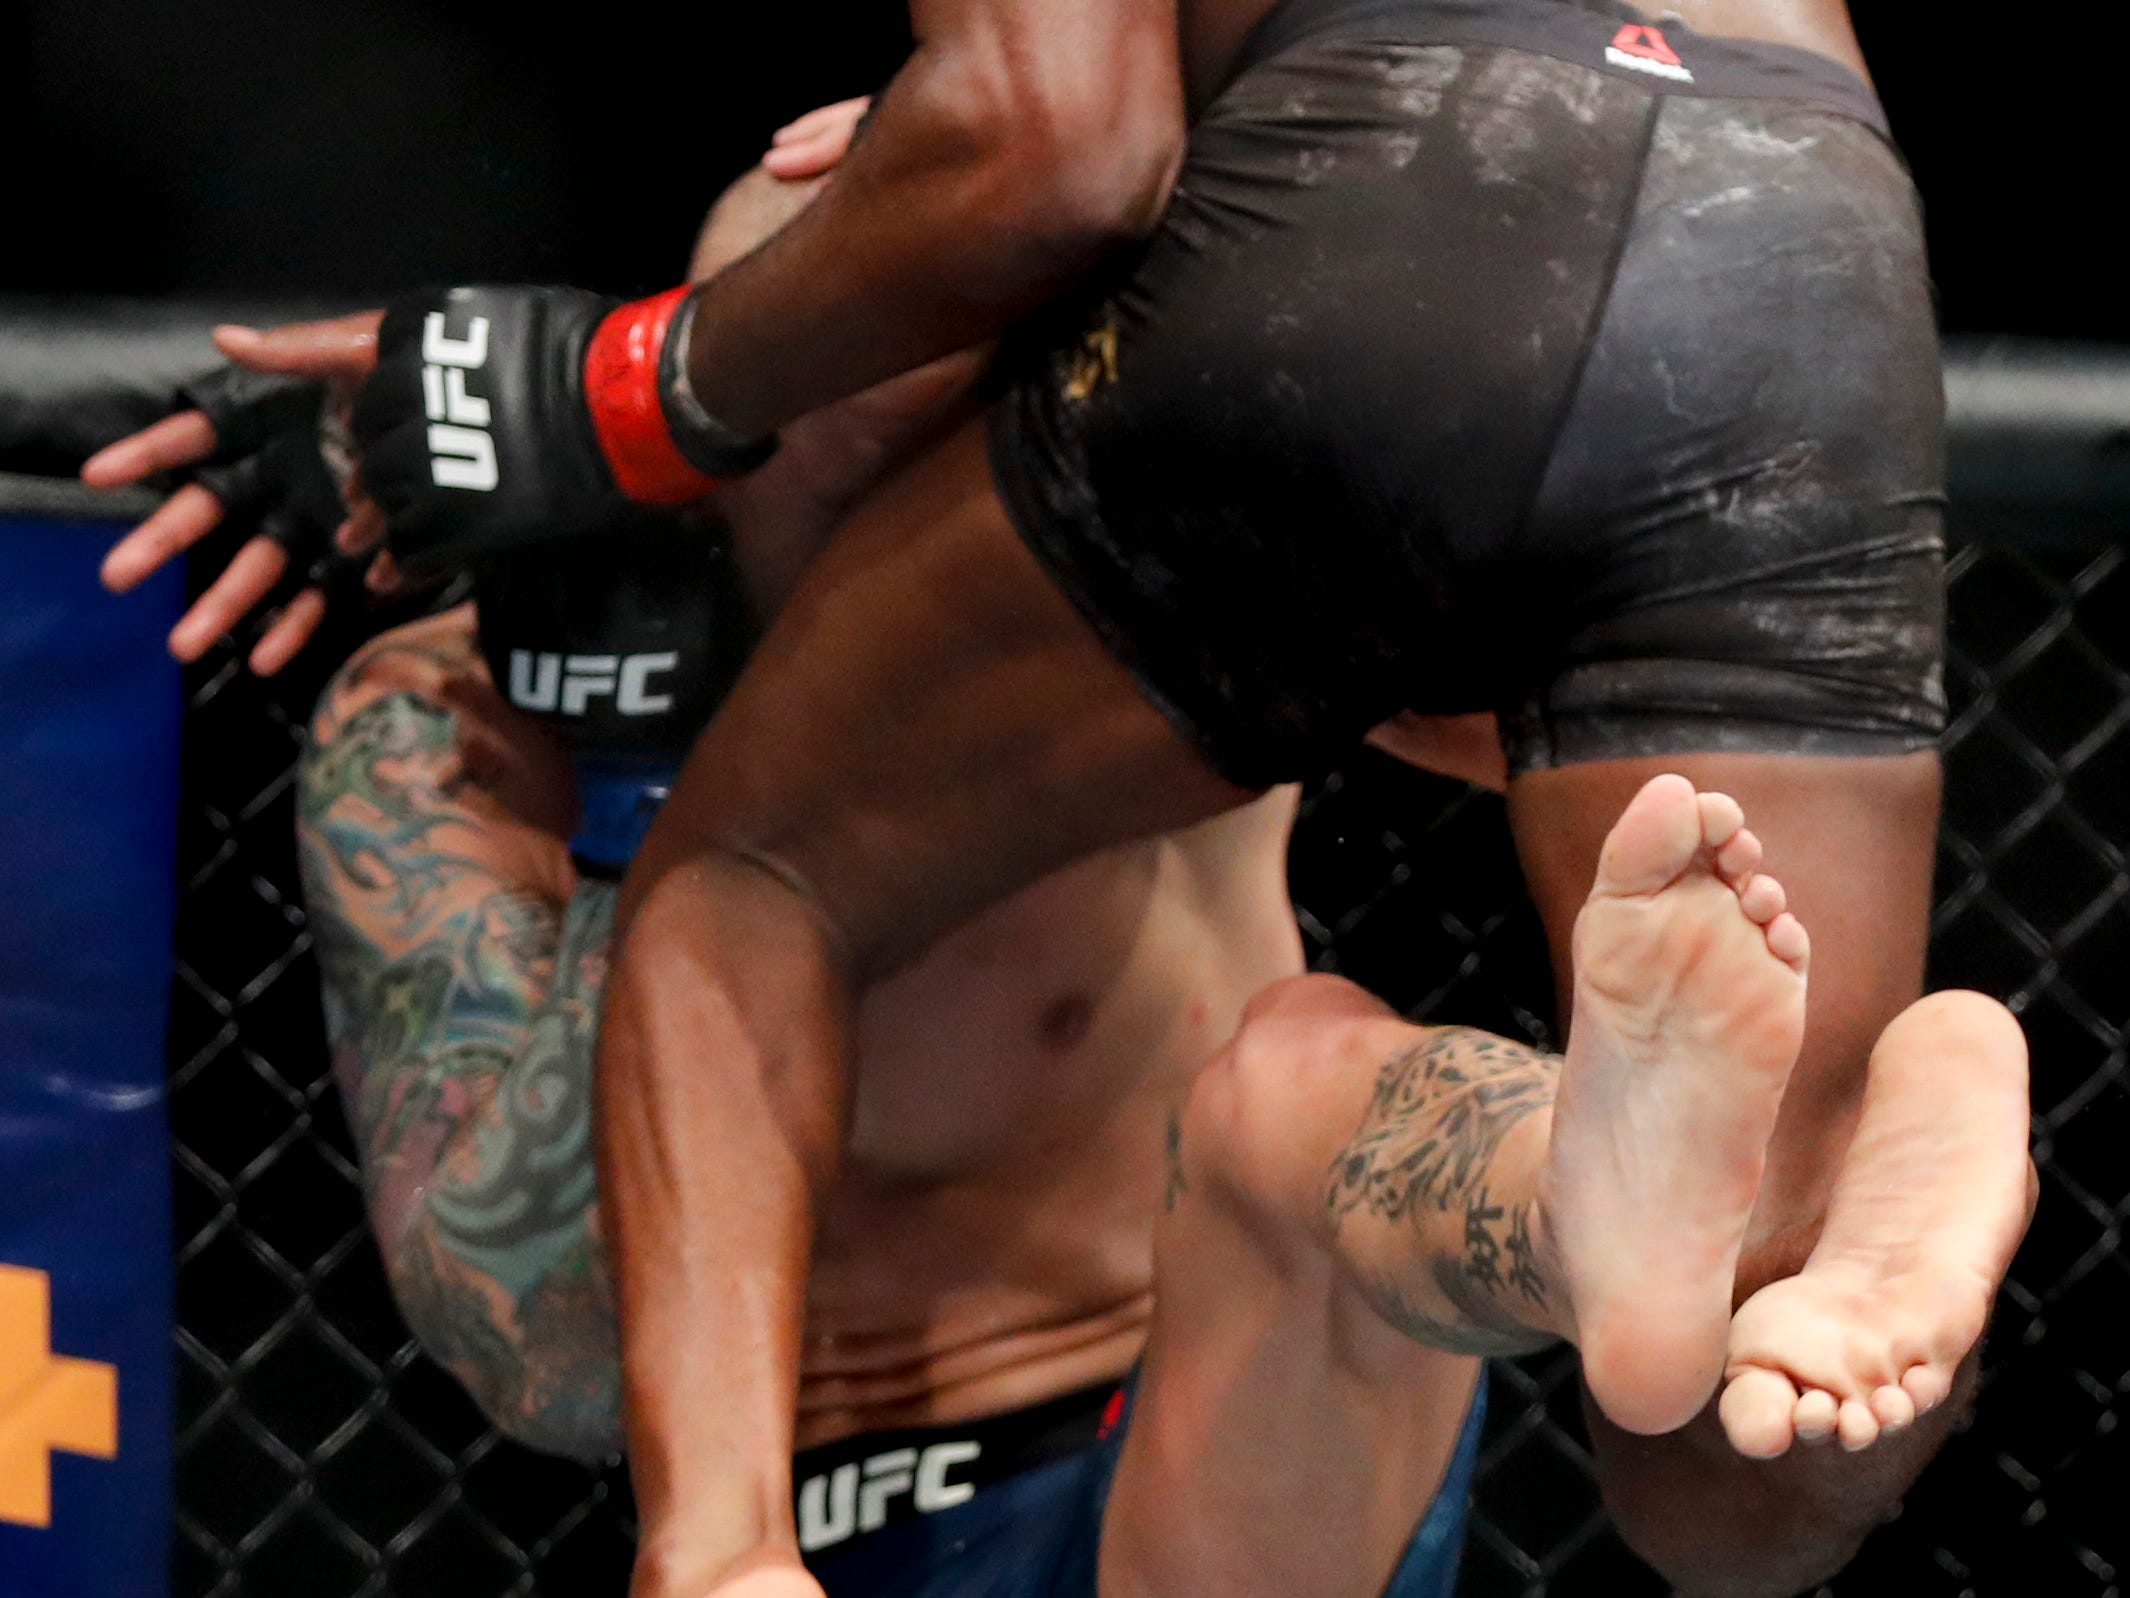 Jon Jones, top, fights Anthony Smith during a light heavyweight mixed martial arts title bout at UFC 235, Saturday, March 2, 2019, in Las Vegas. (AP Photo/John Locher)